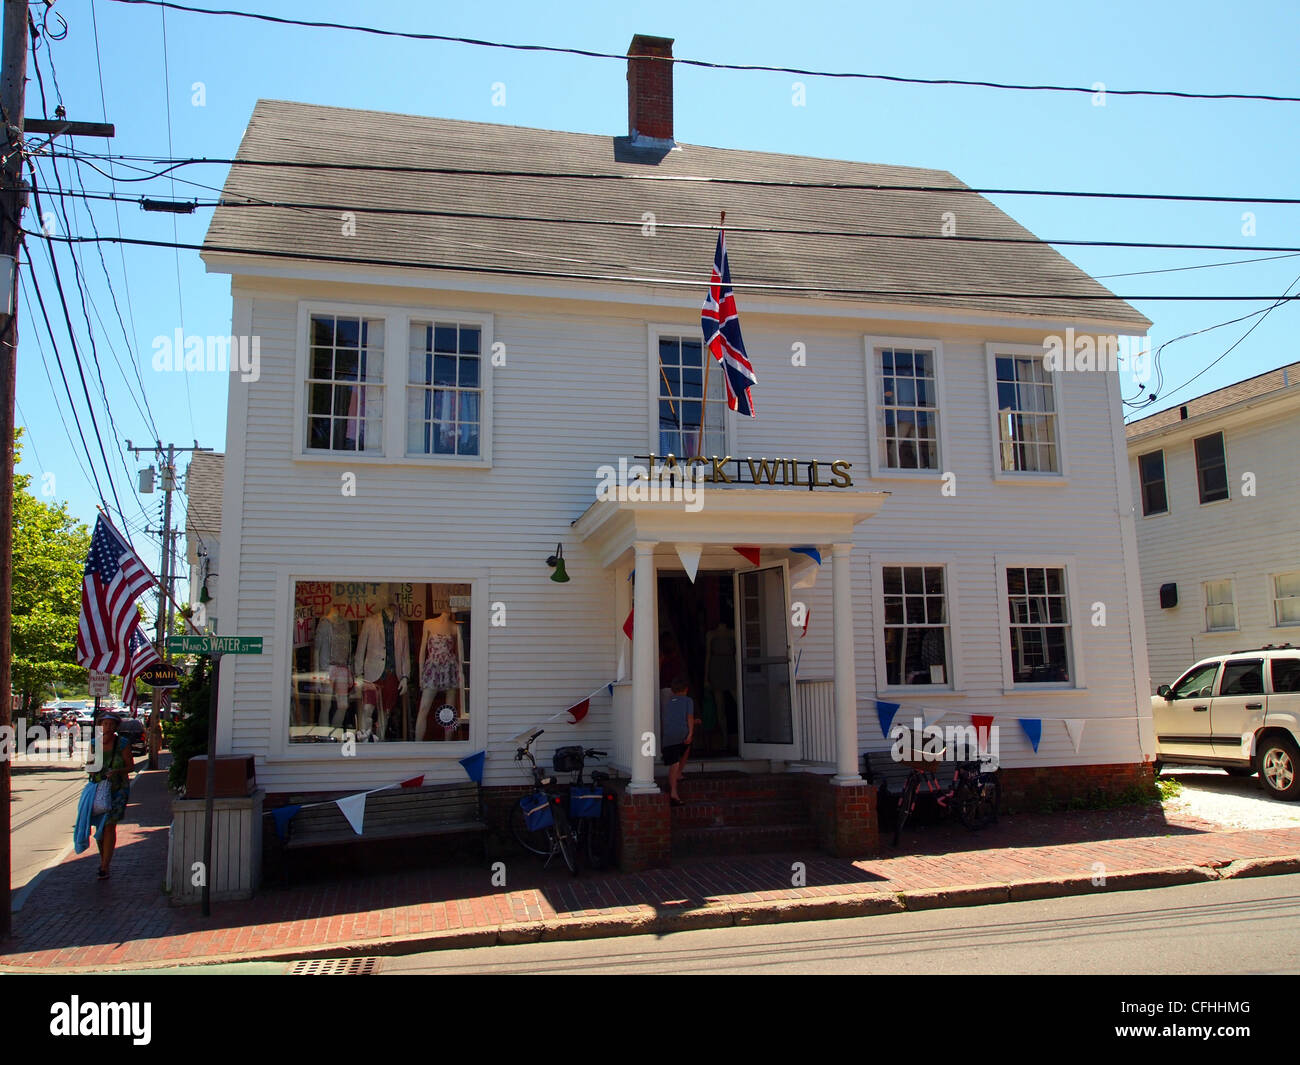 Successful British clothing company Jack Wills store in Edgartown, Marthas Vineyard, Cape Cod, USA - Stock Image